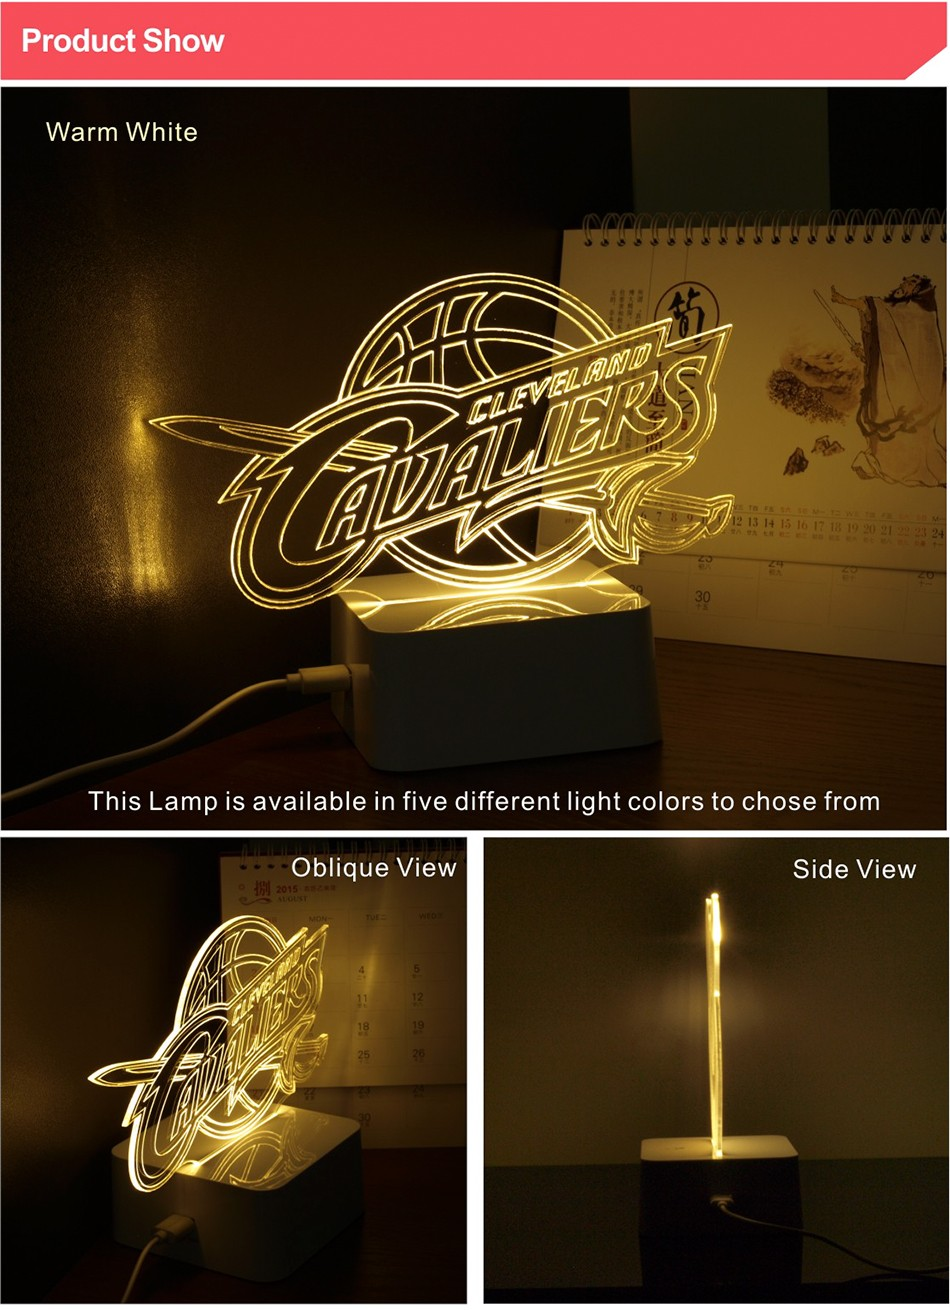 USB Novel Lamp NBA 3D LED Night Lights as Home Bedroom Decorative Besides Lampara for Cavalier Team (2)